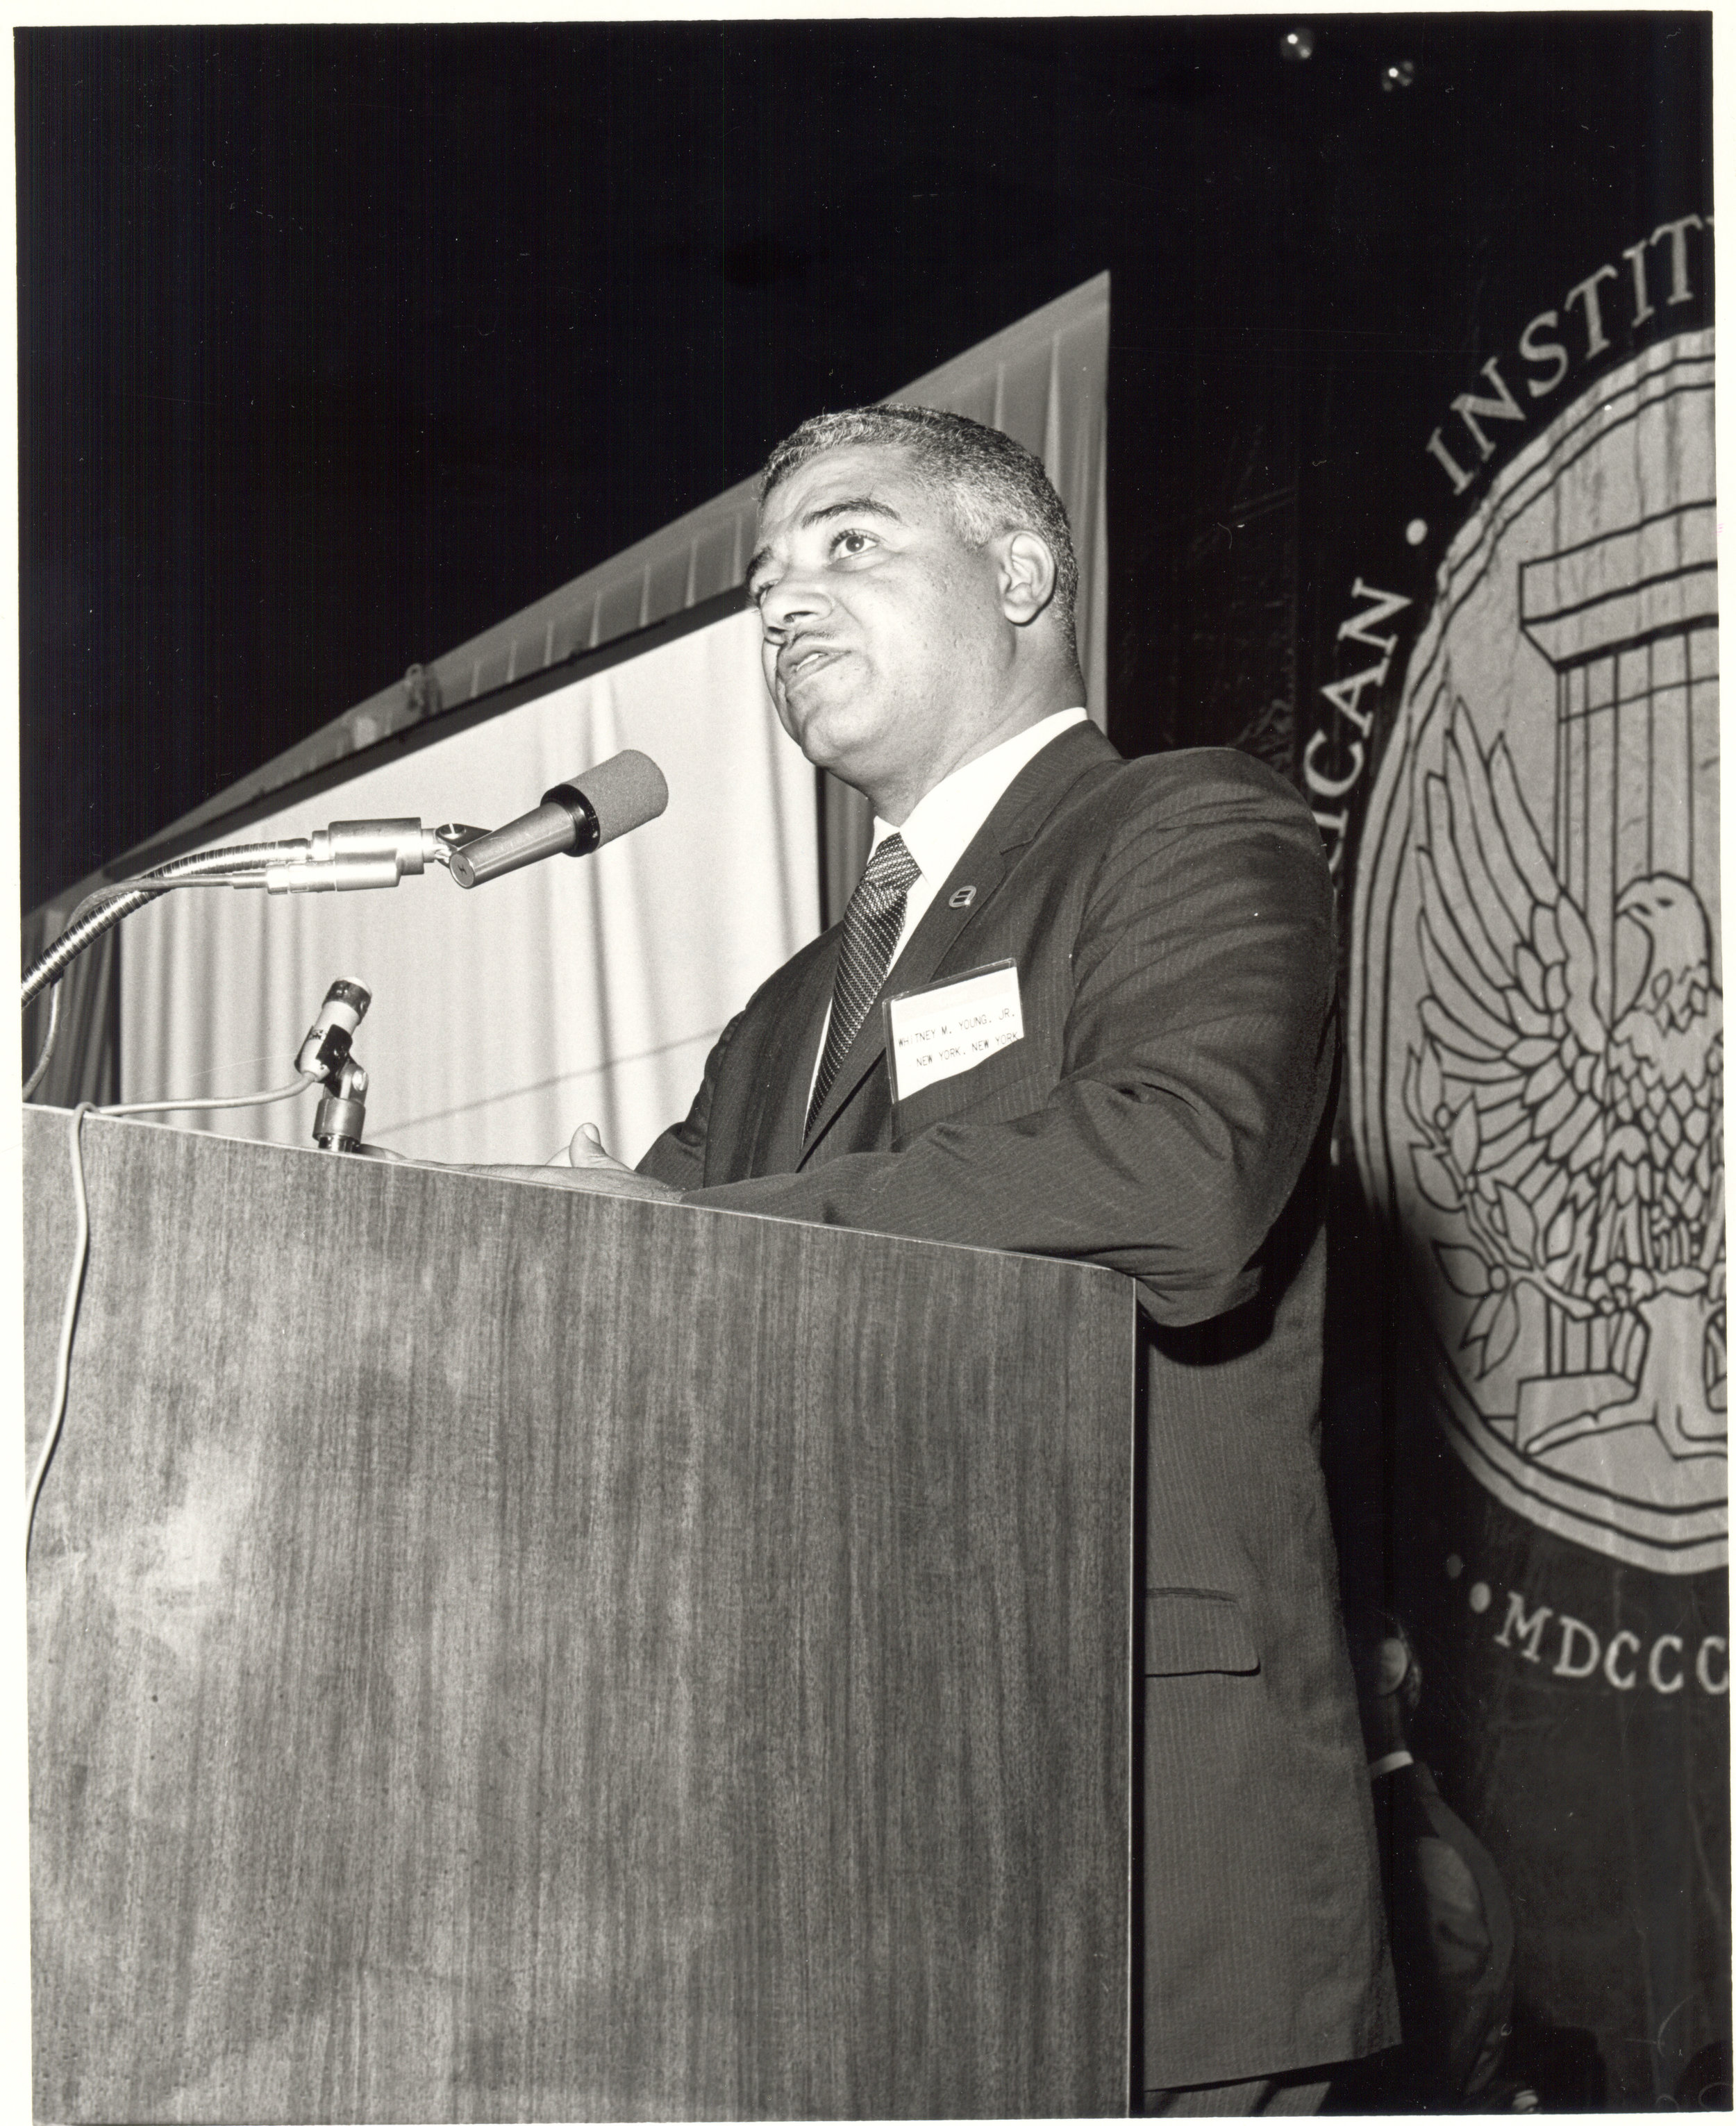 Whitney Young Jr. Speaking to AIA National Convention, The American Institute of Architects Archive, Washington D.C., 1968